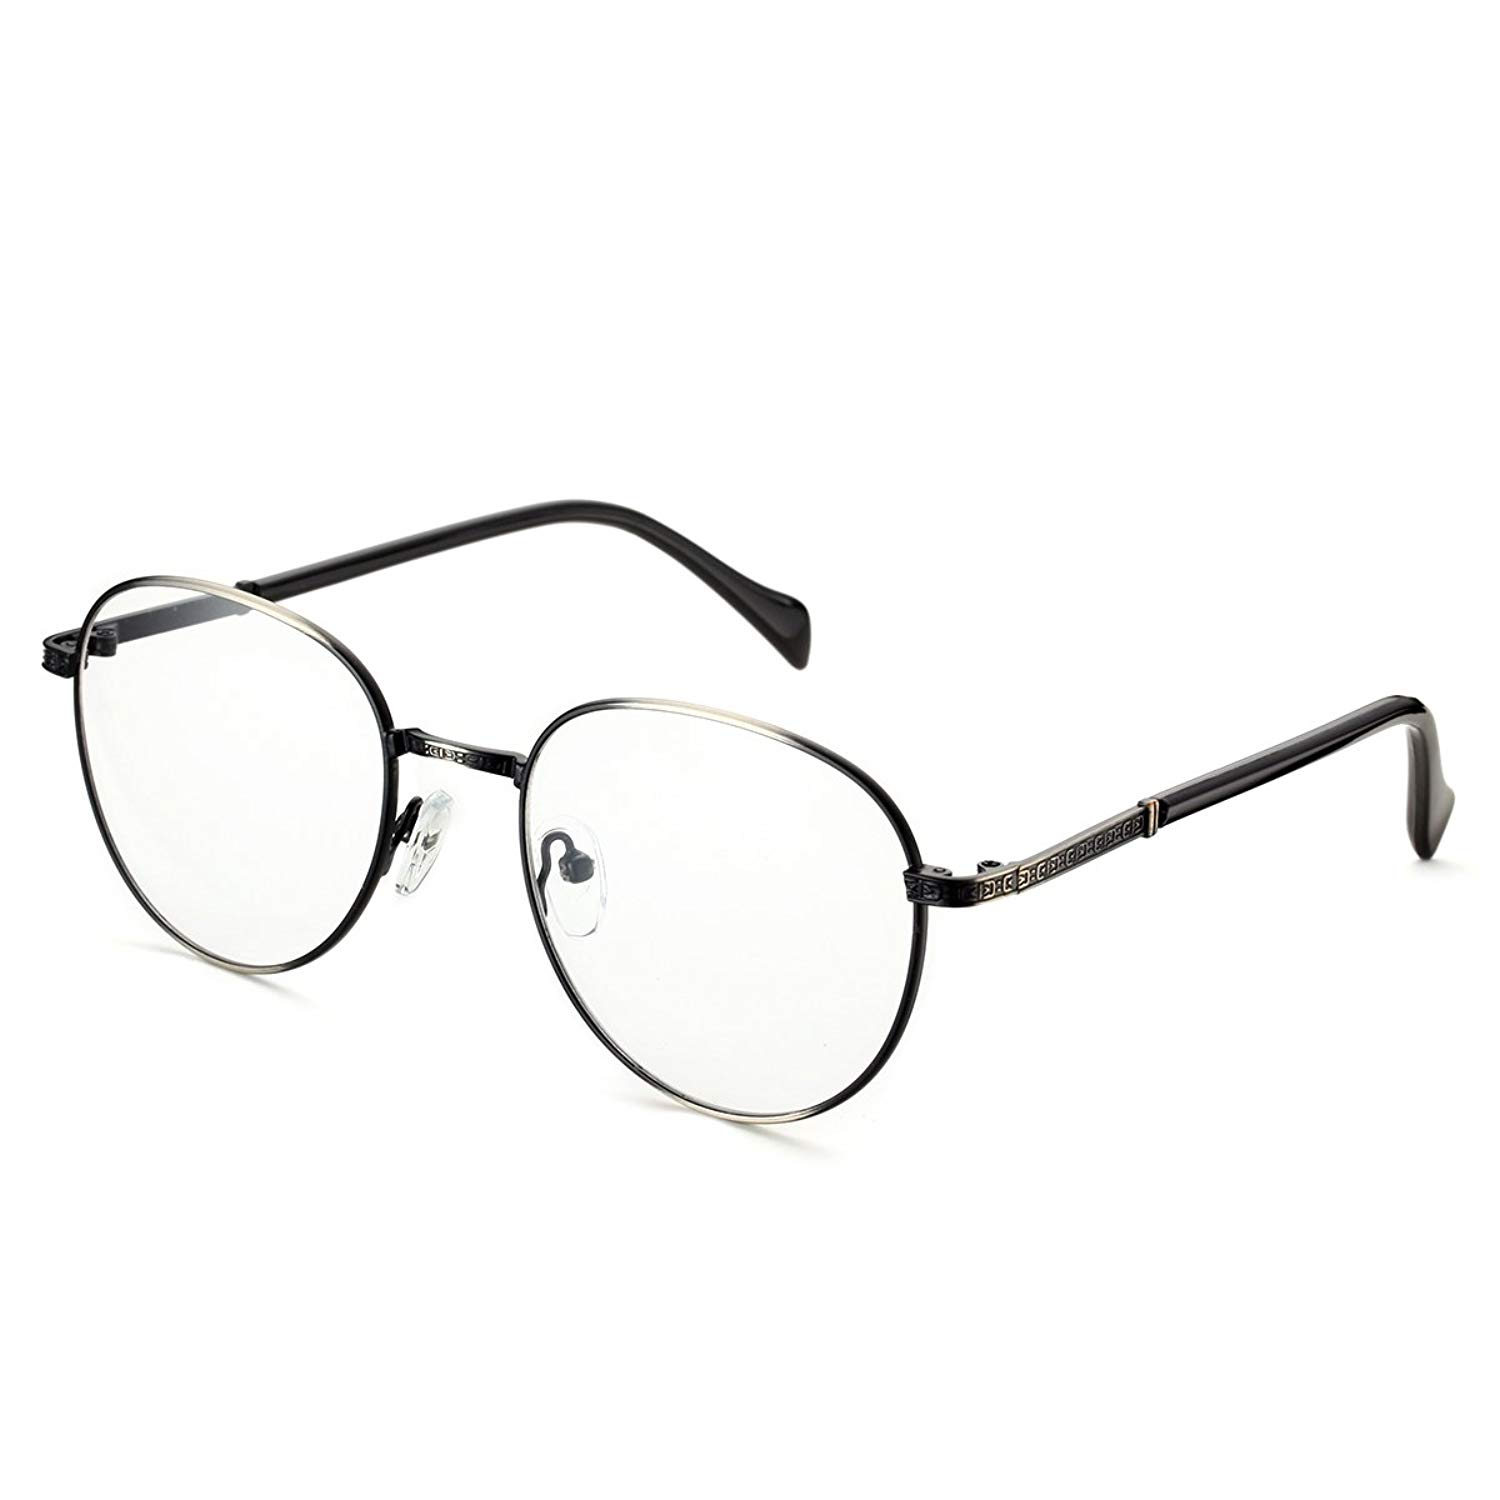 a6fe7584868 Get Quotations · PenSee Optical Frames Metal Unique Designer Oval Round  Eyeglasses Eyewear